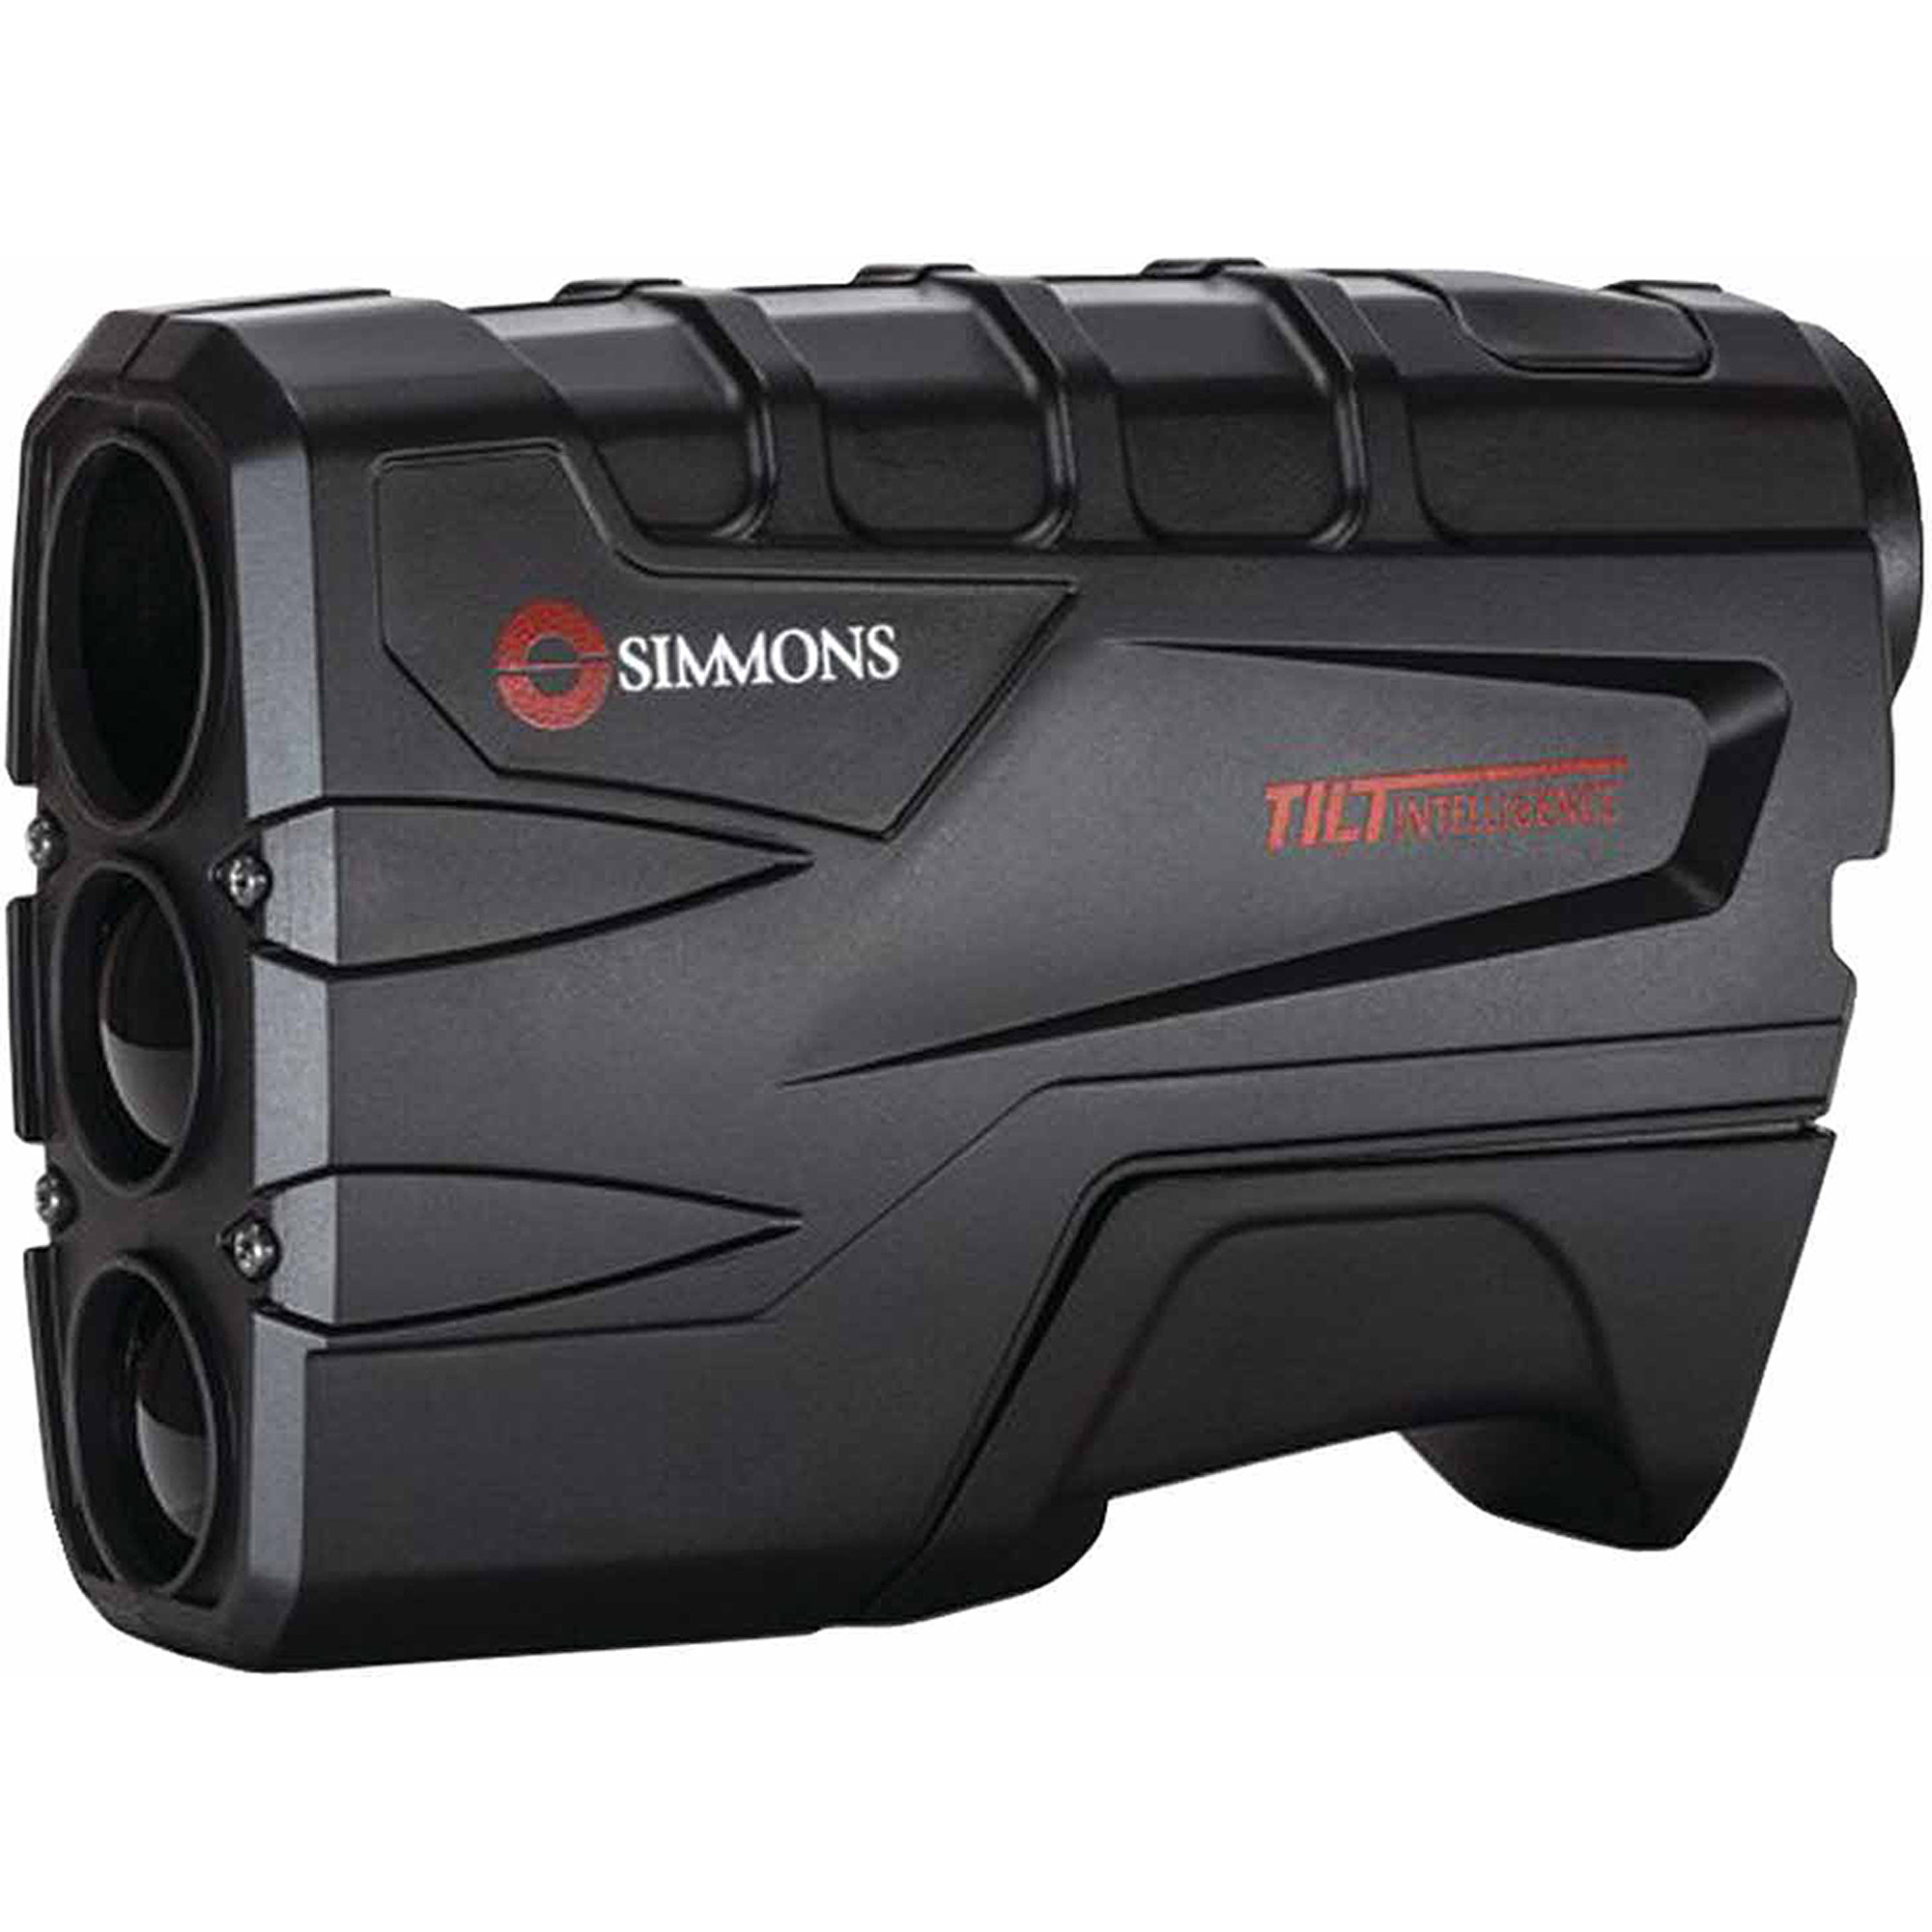 Simmons 801600T 4 x 20mm Vertical Rangefinder, Tilt